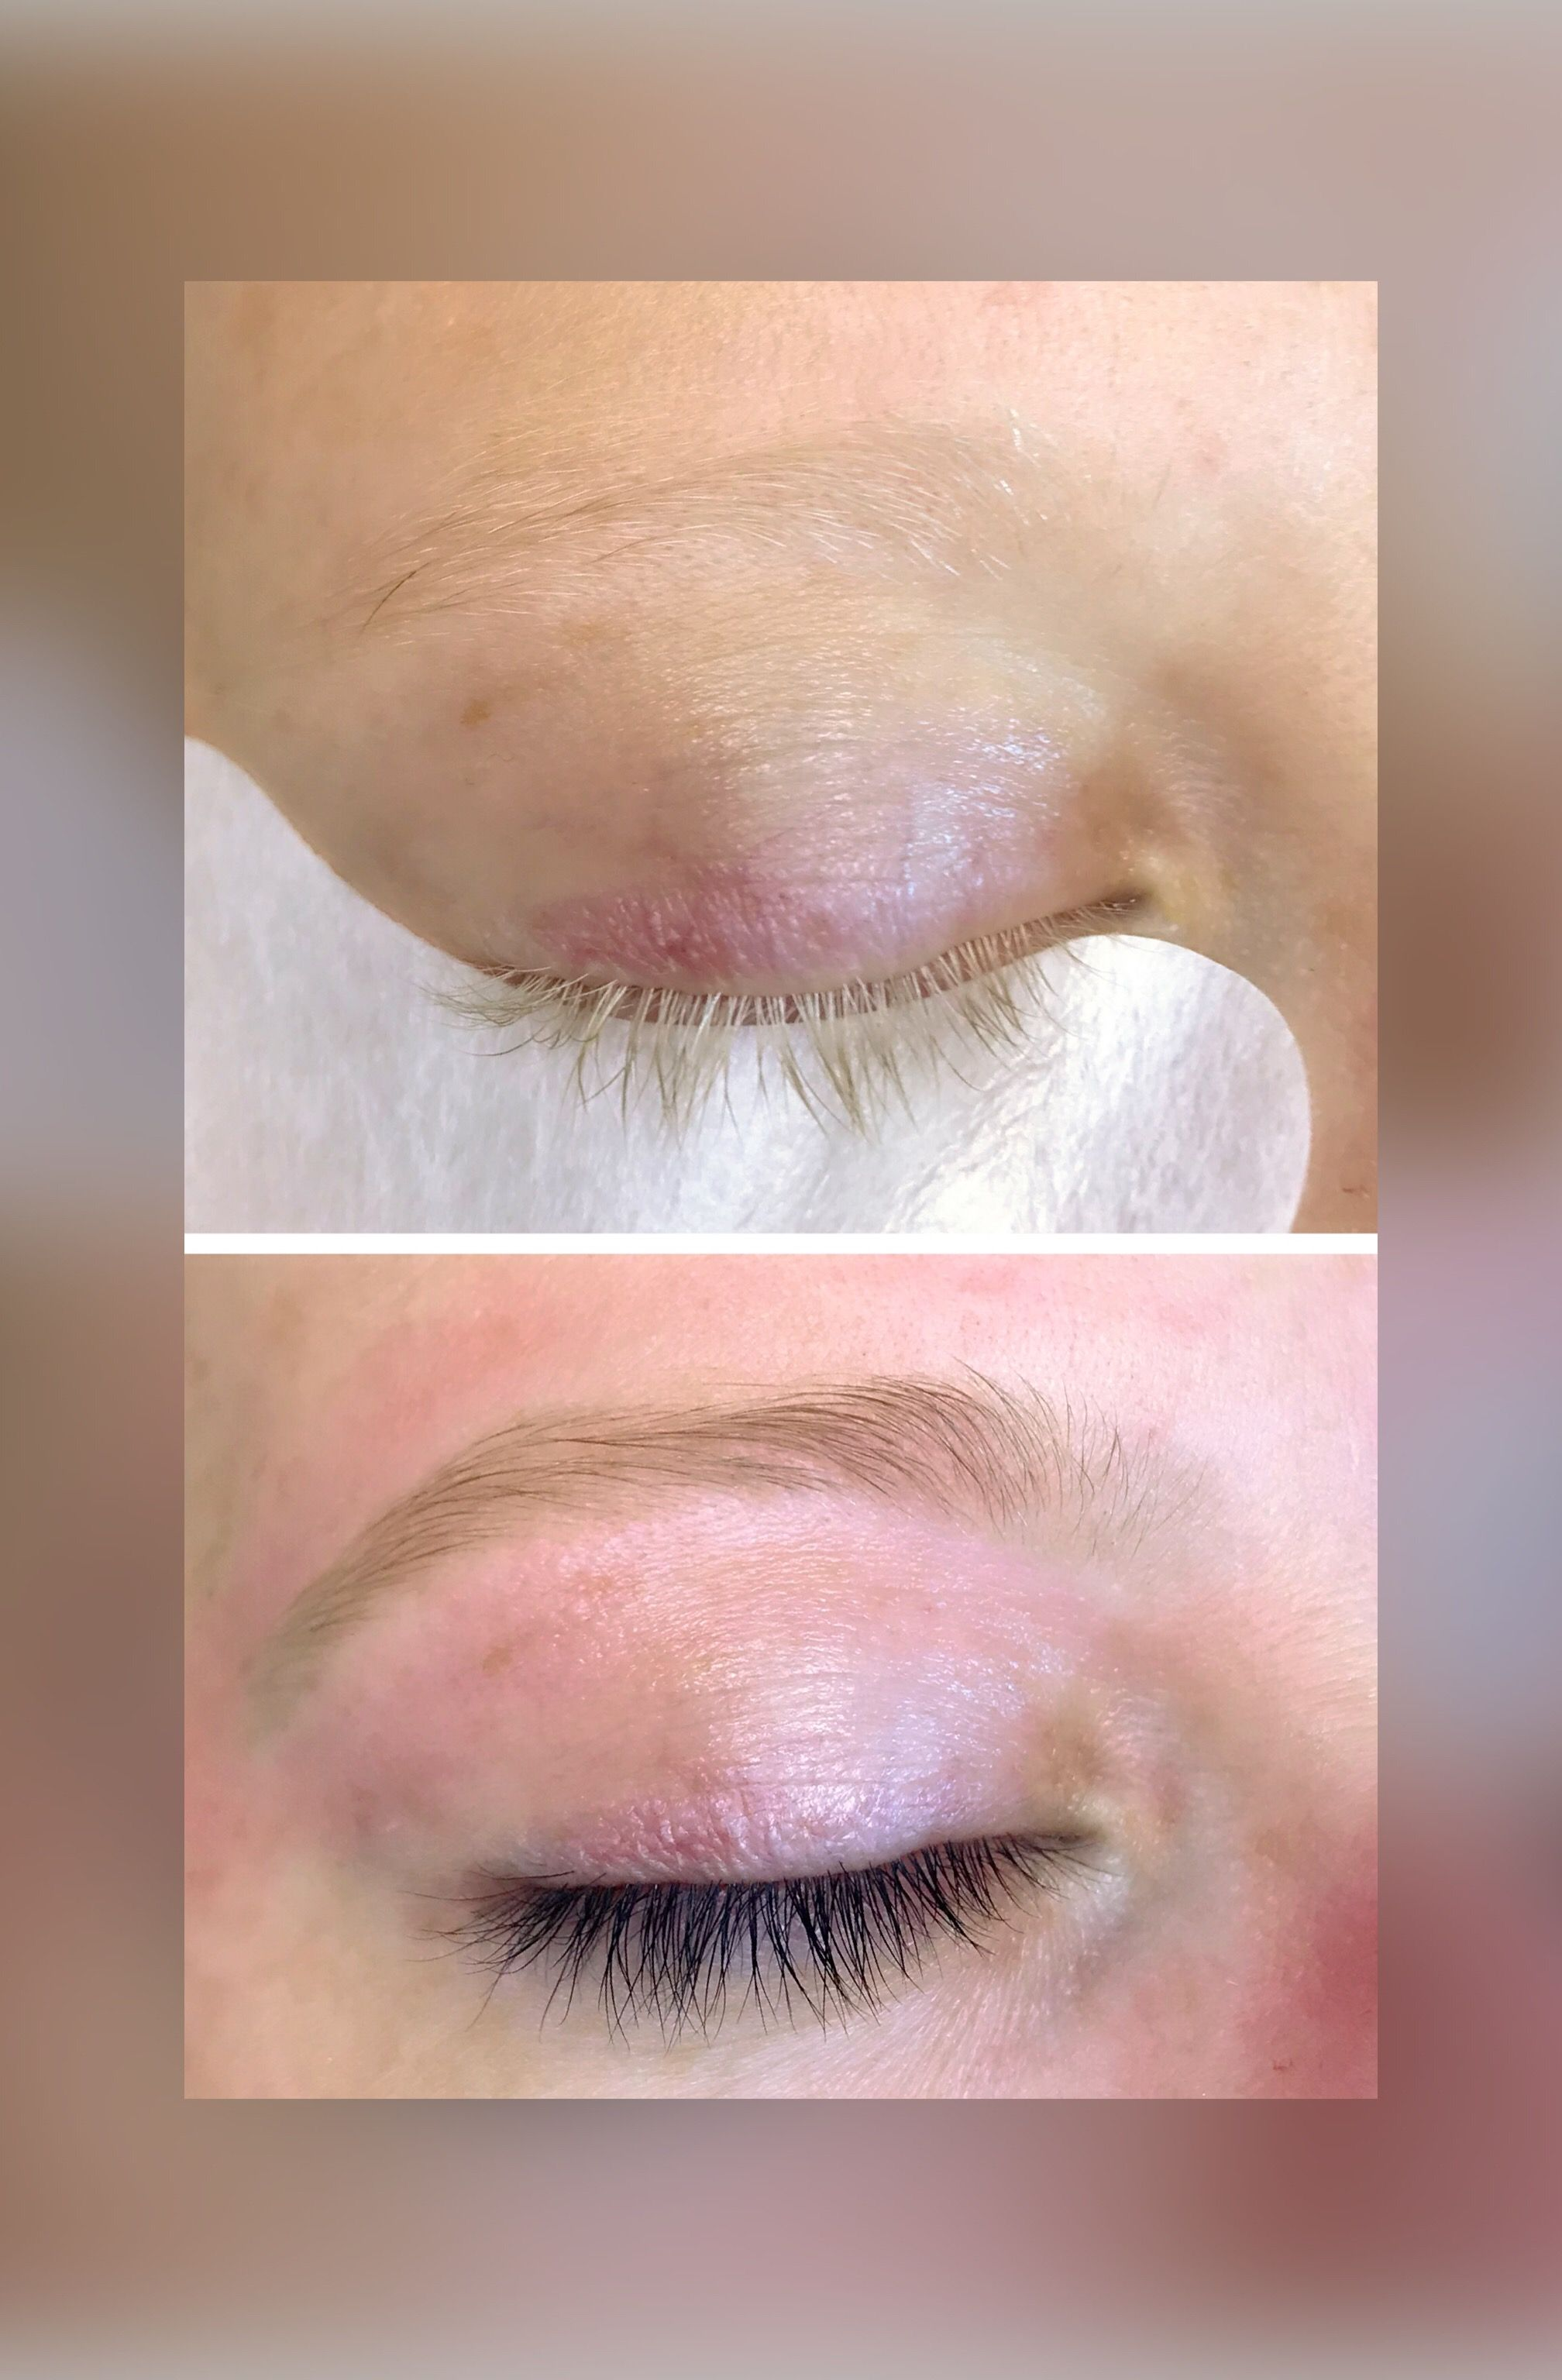 How Eyelash and Brow Tinting can Improve Your Appearance